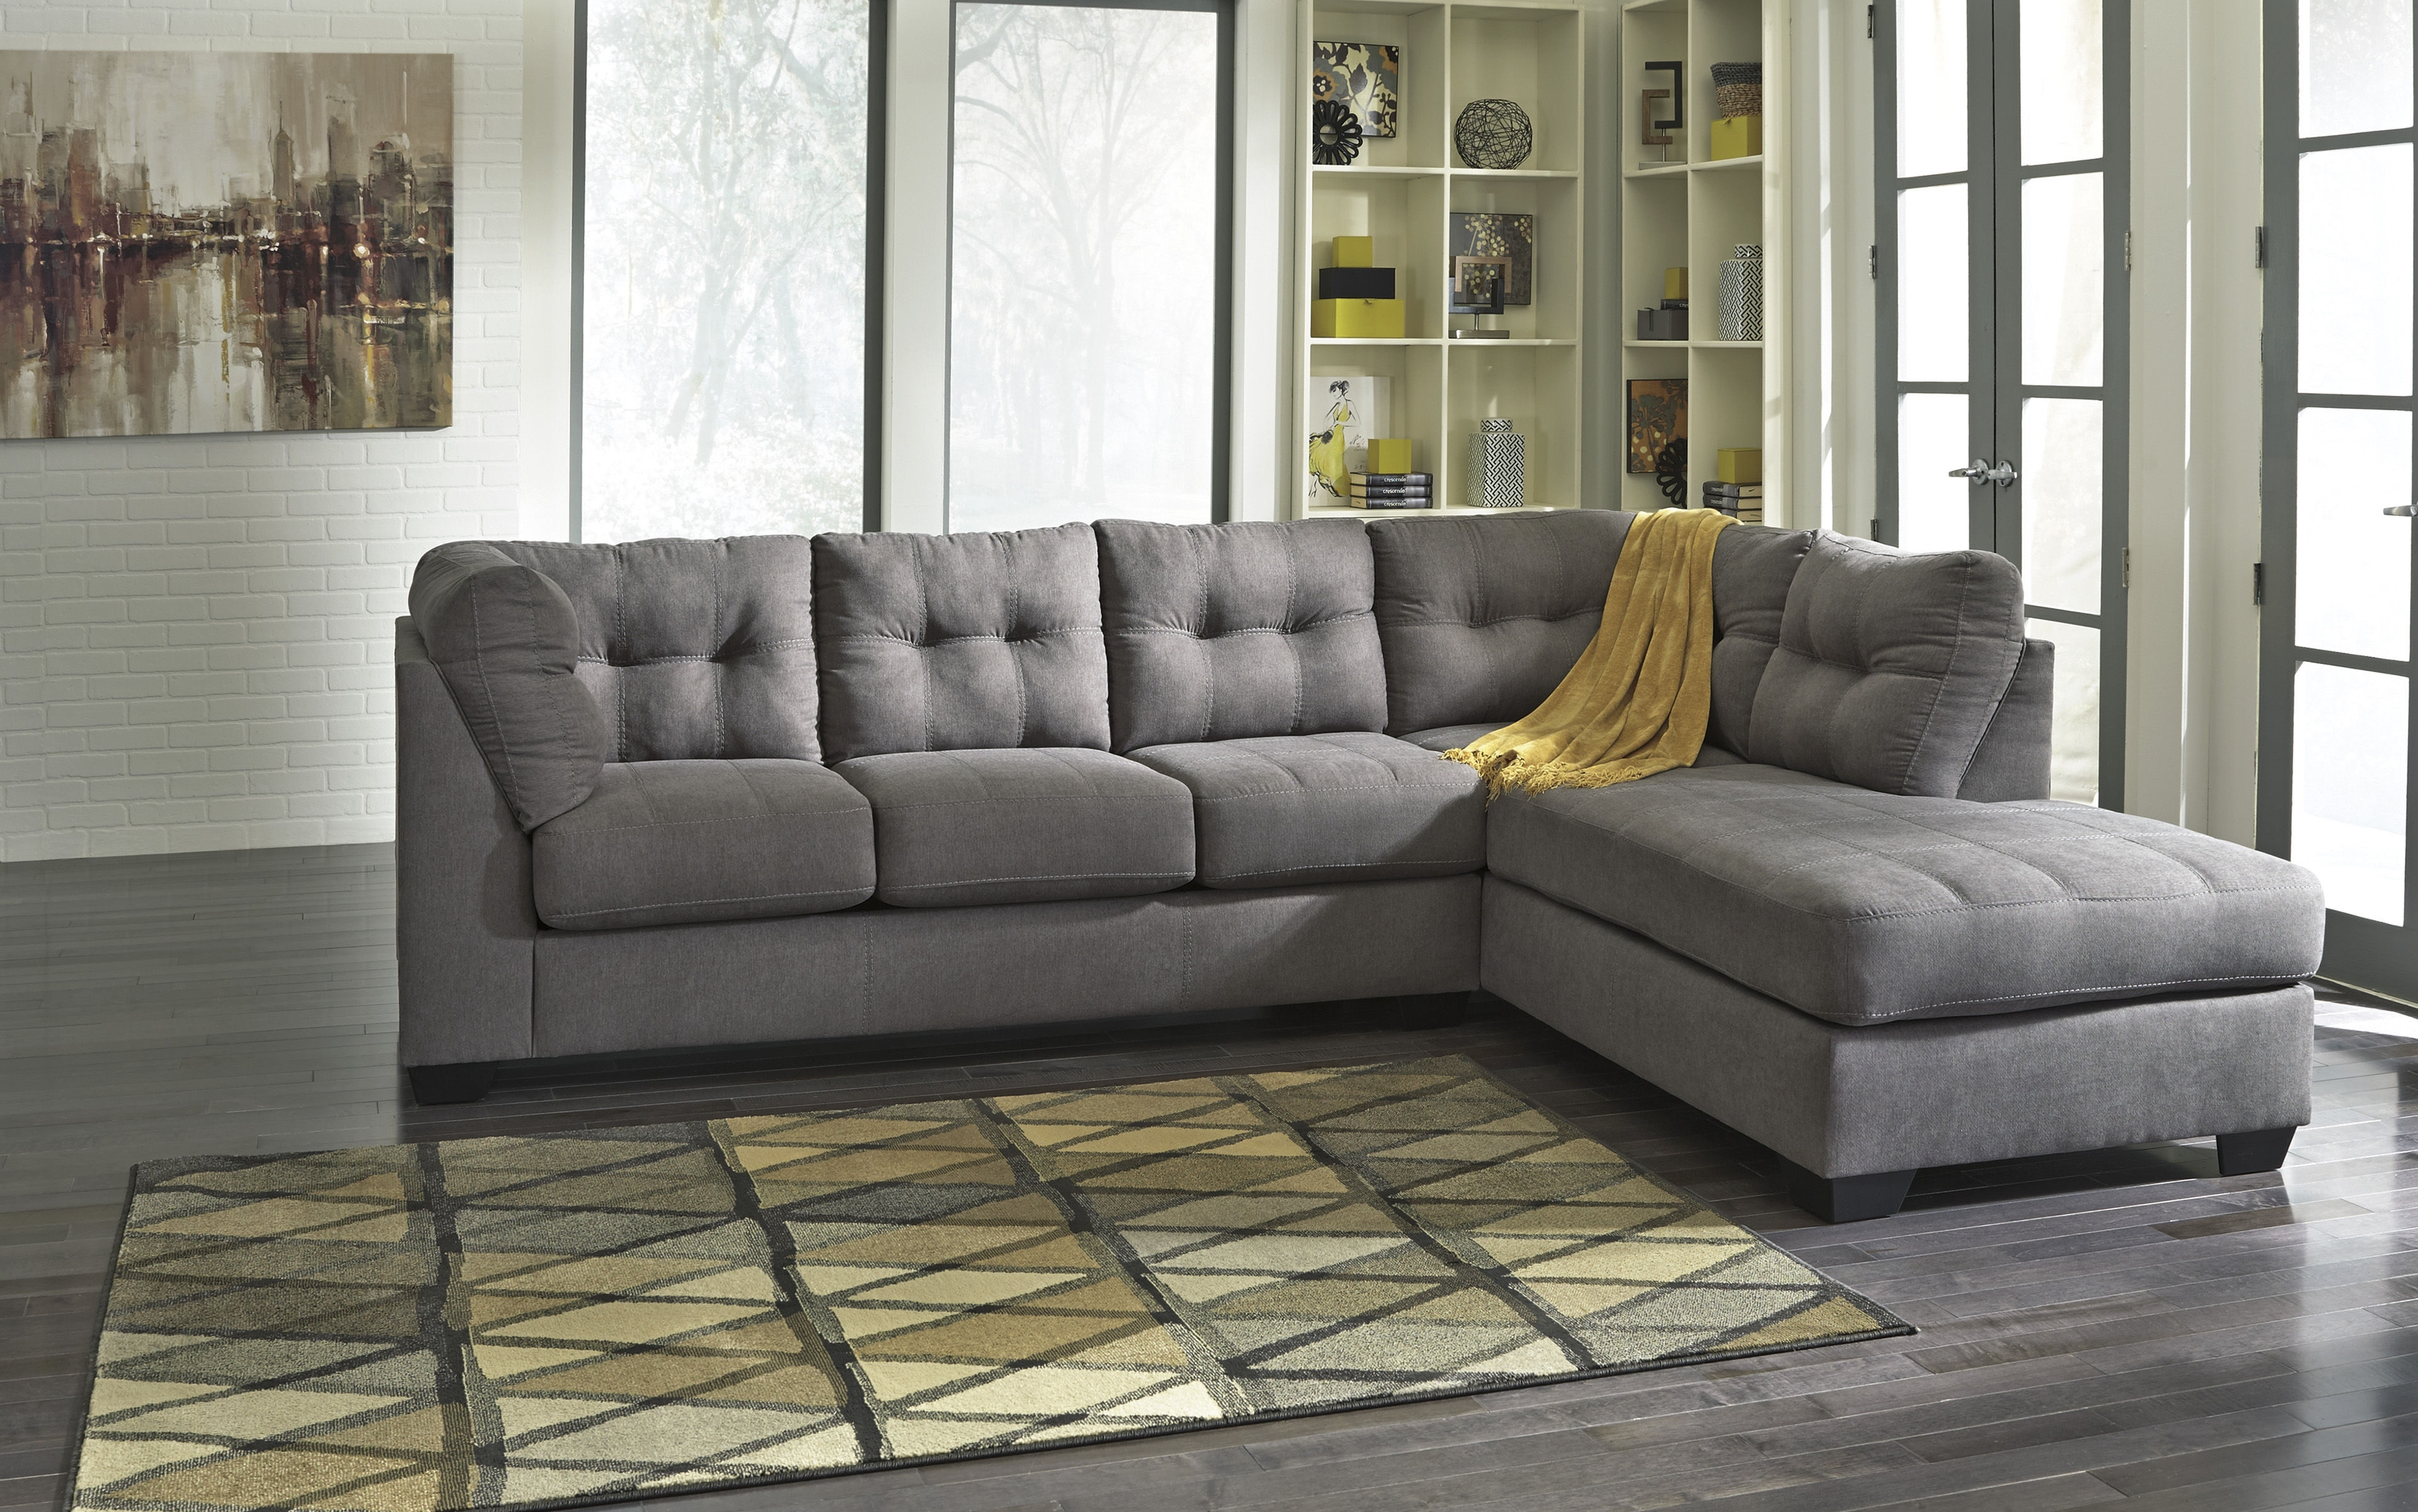 Ashley Furniture Maier Charcoal Raf Chaise Sectional | The Classy Home With Lucy Dark Grey 2 Piece Sectionals With Laf Chaise (Image 4 of 25)